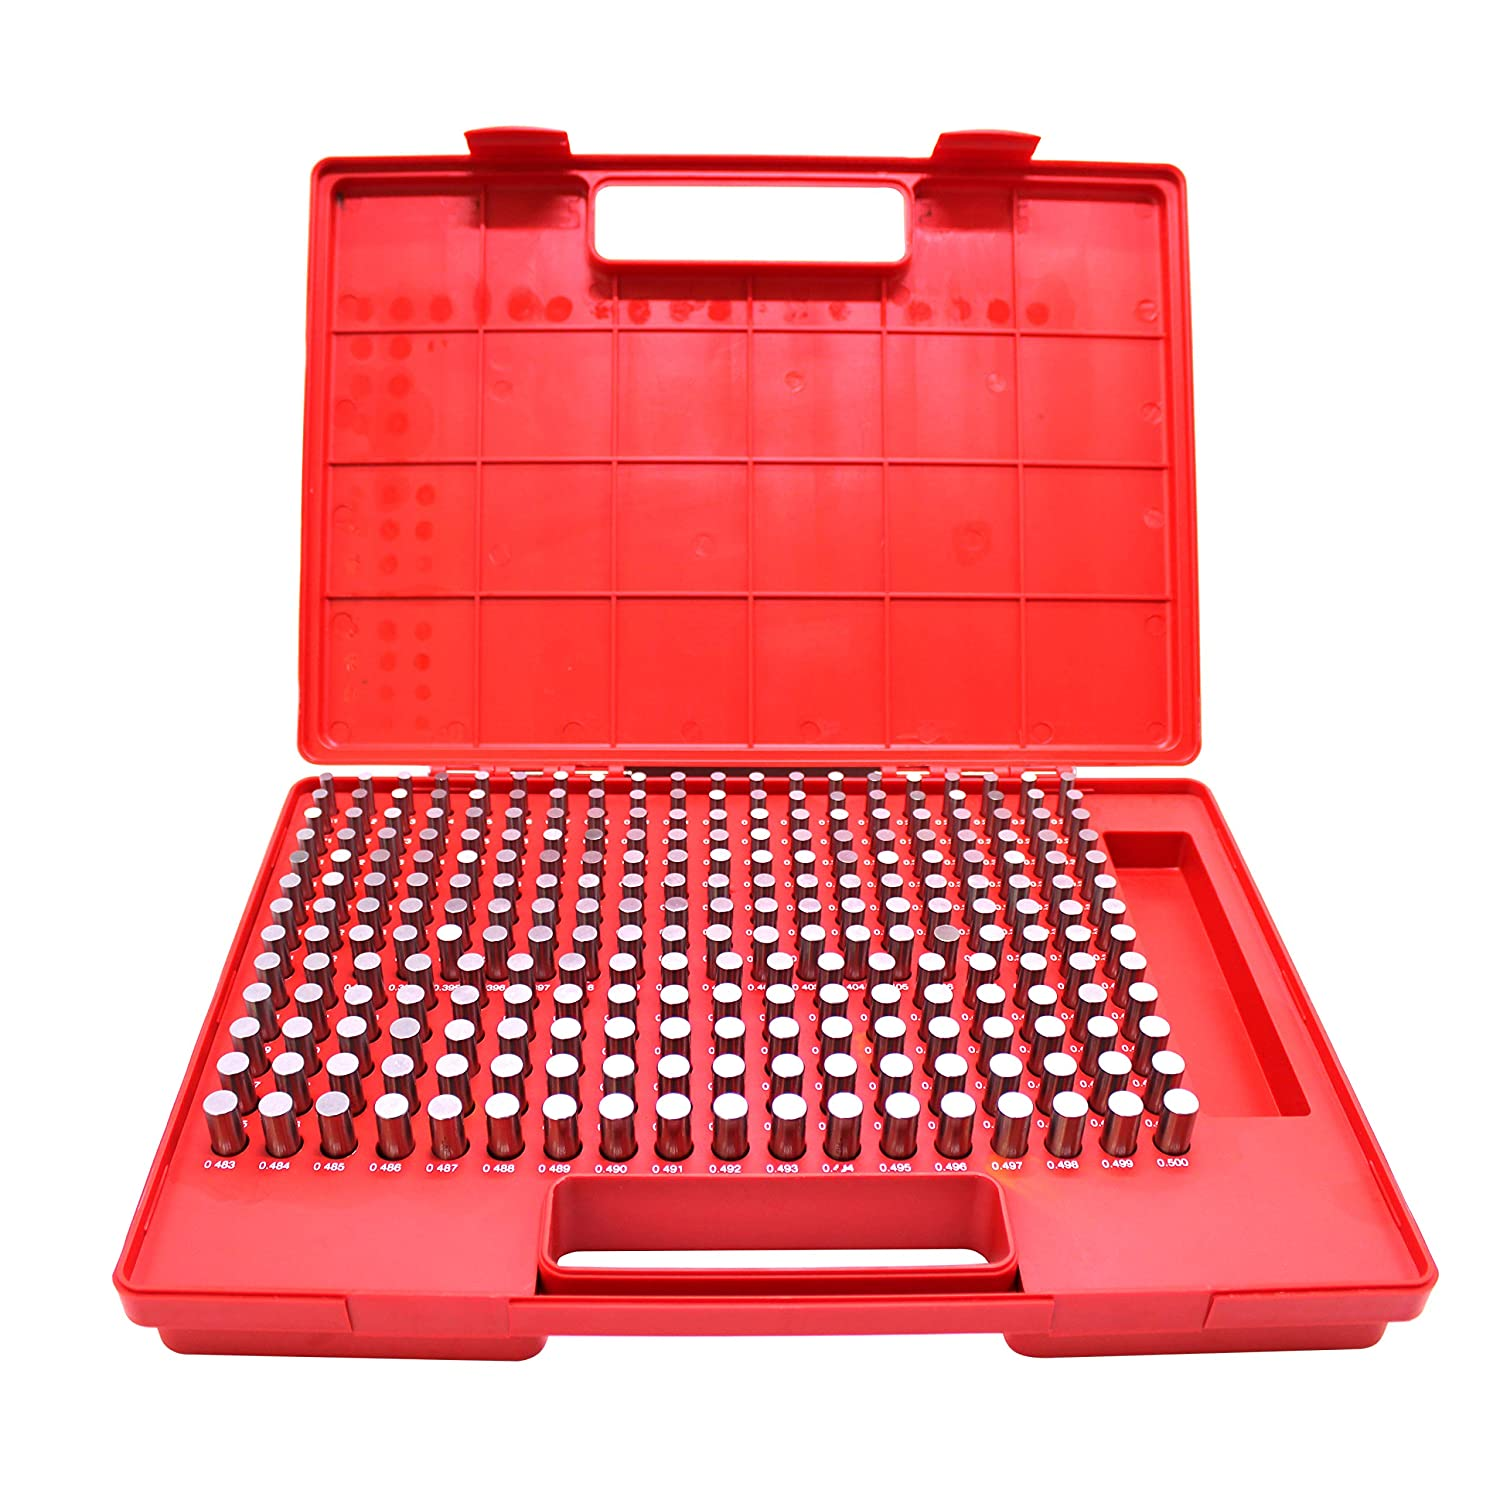 HFS R Class ZZ Steel Pin Gage Set Recommended 250pcs Purchase Minus 0.251-0.500